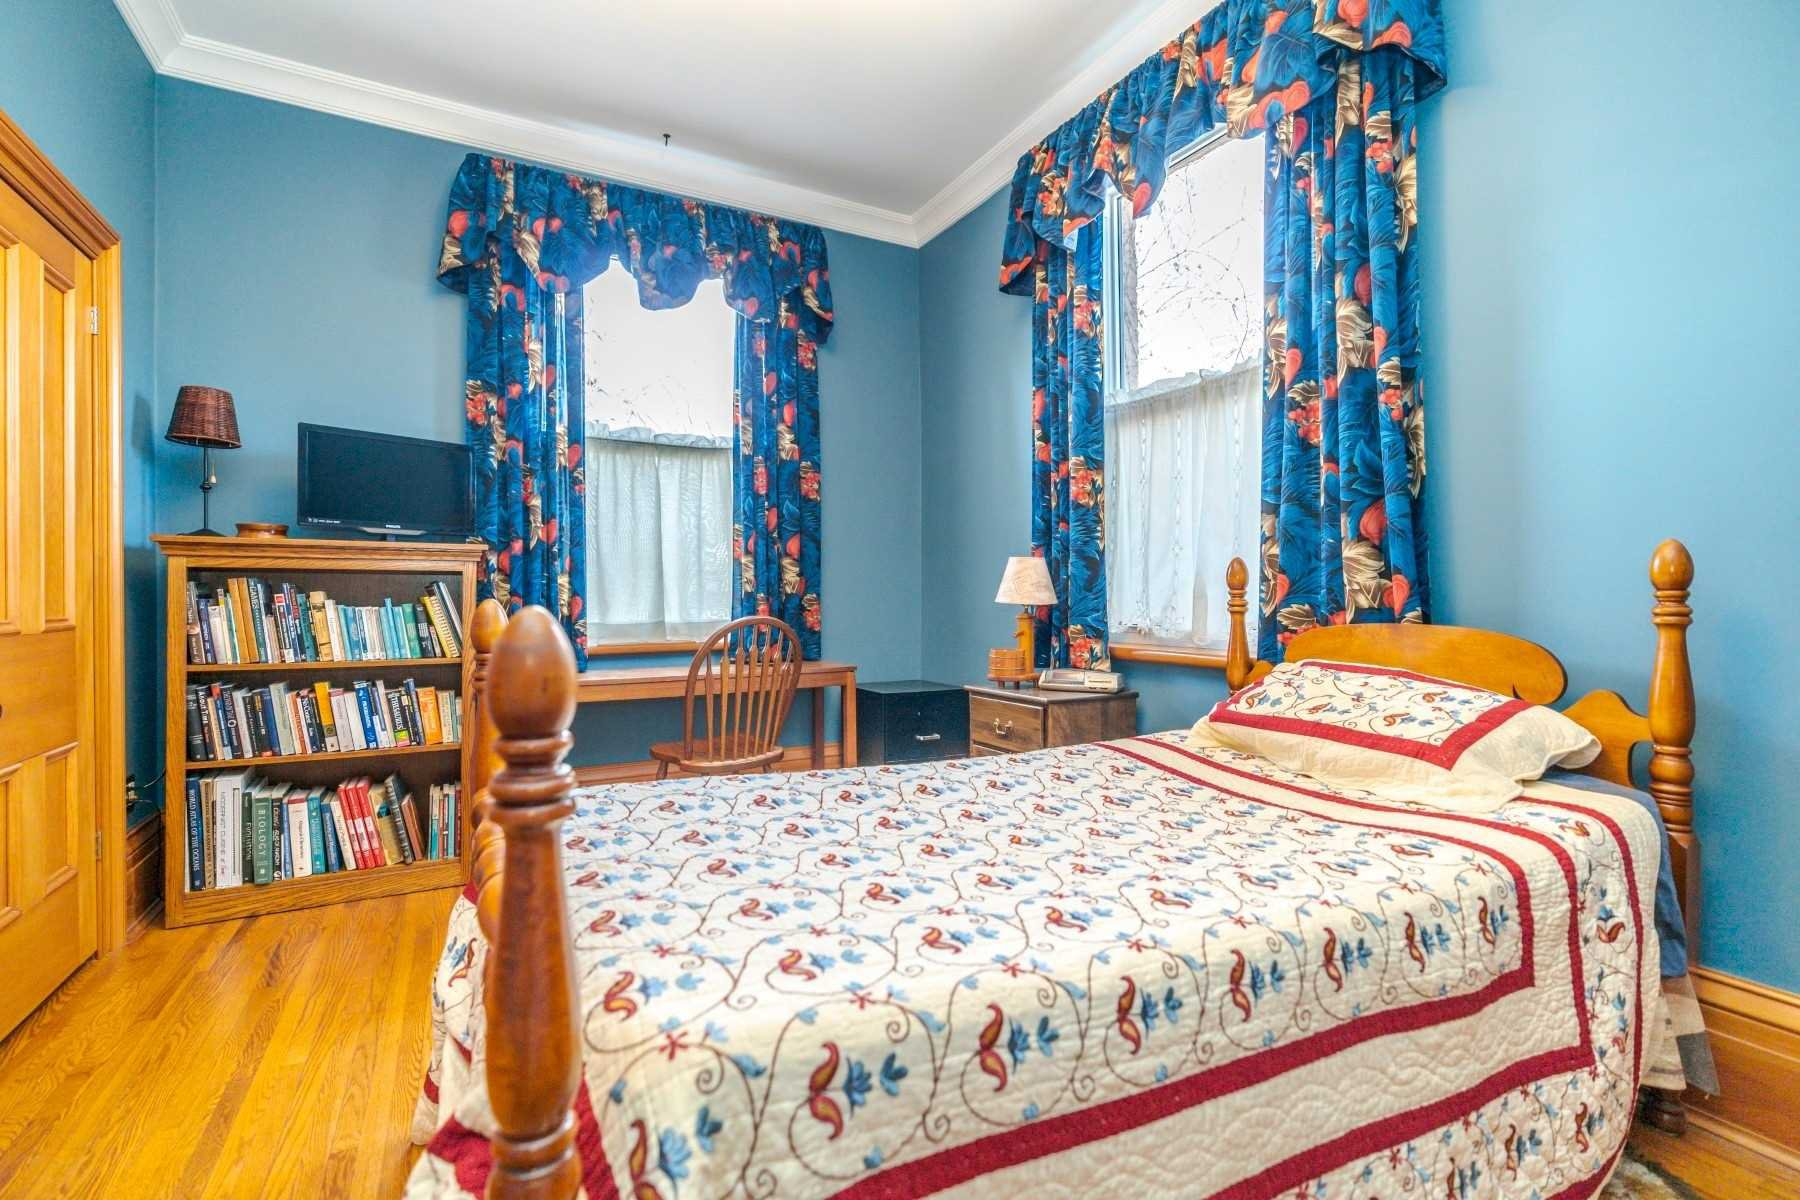 Photo 13: Photos: 1009 S Centre Street in Whitby: Downtown Whitby House (Bungalow) for sale : MLS®# E4714116